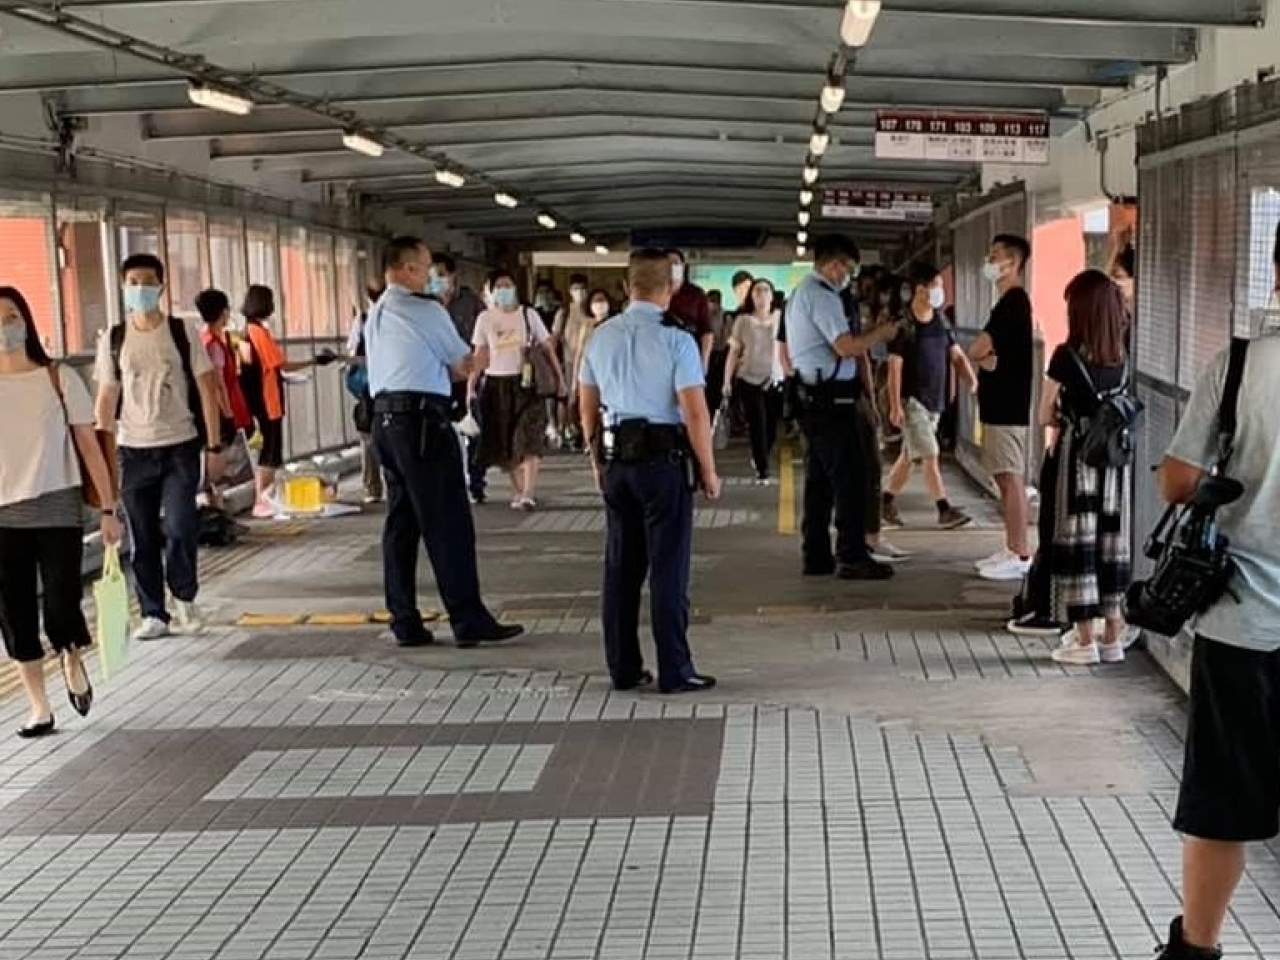 A photo shared by the activists group on their social media page shows police officers approaching them near Hung Hom MTR station.